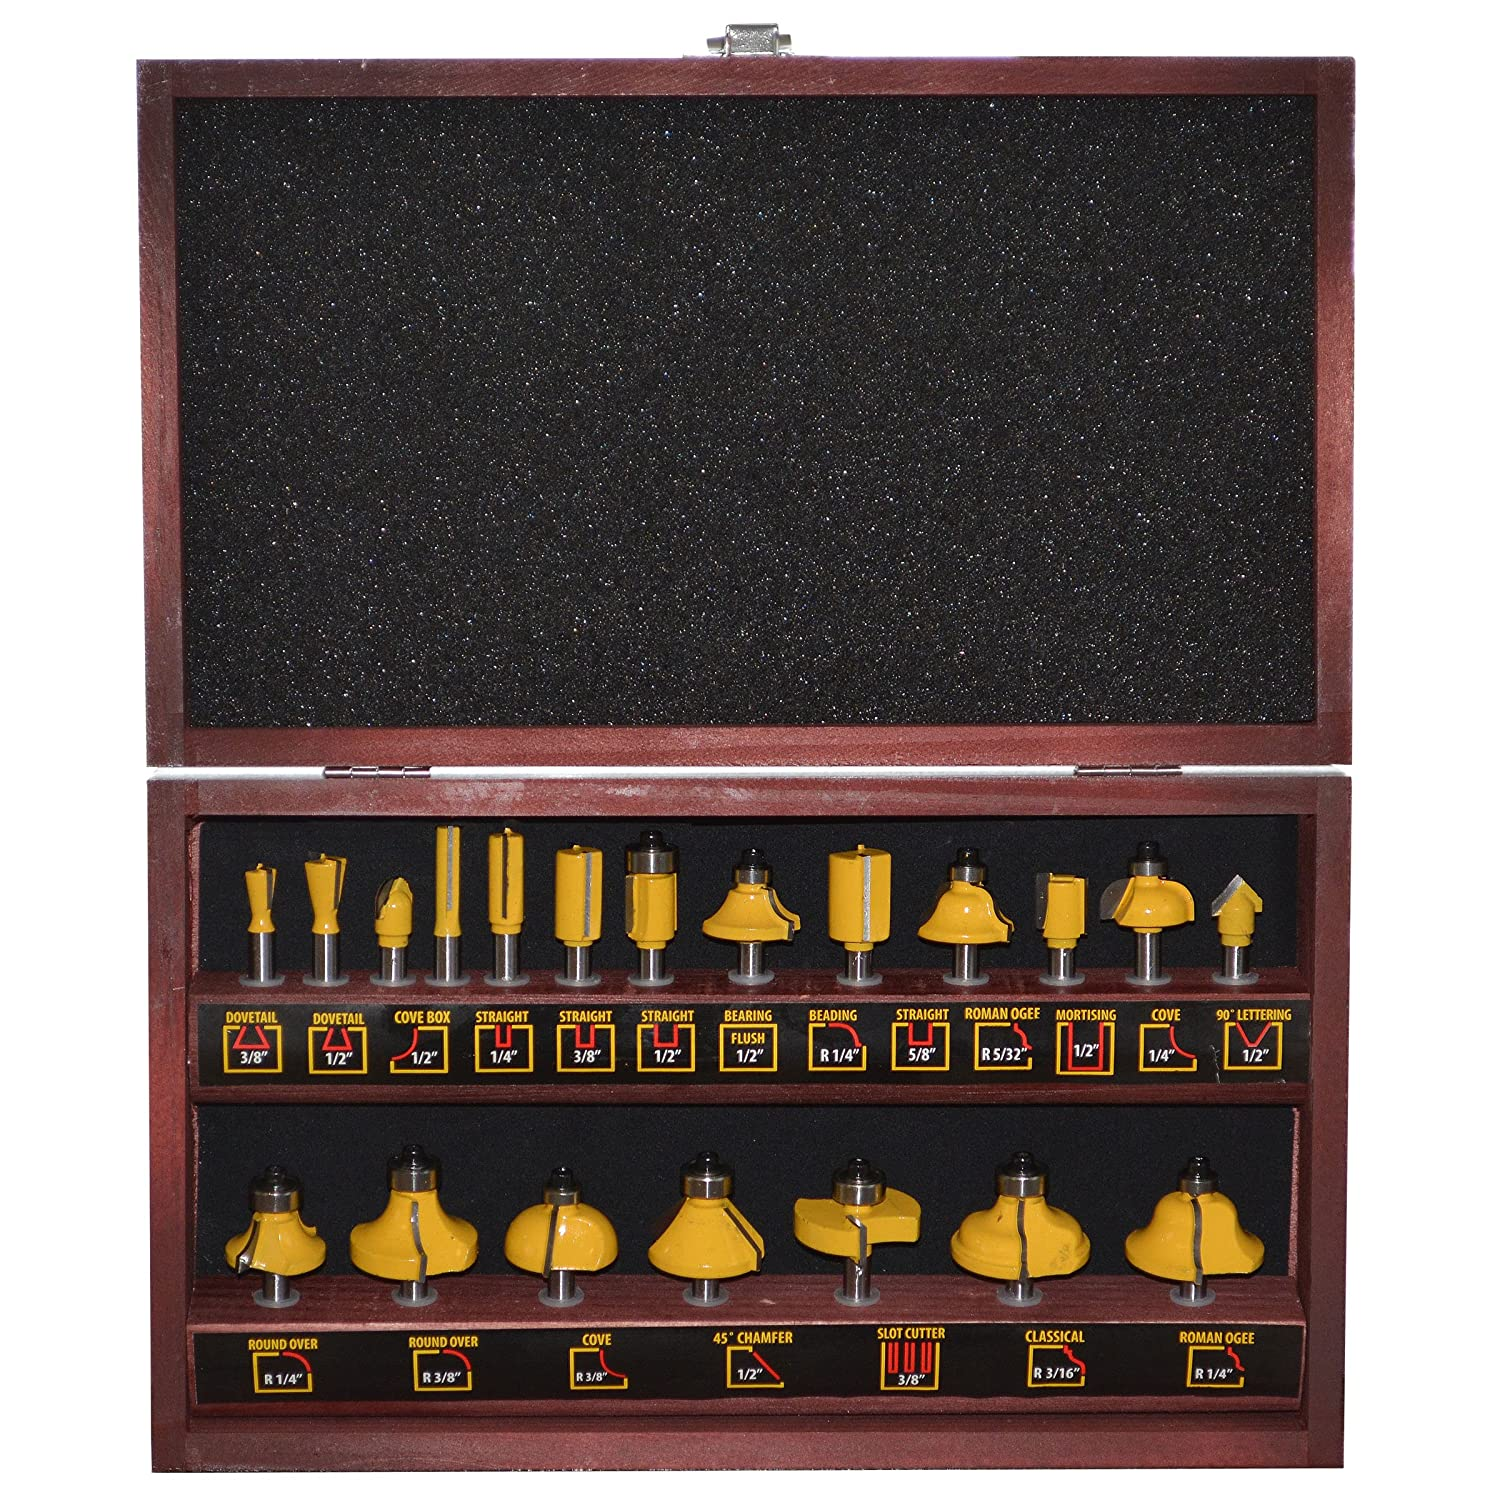 RBSET20 Pro-Series 20Piece Router Bit Set In Wood Box Buffalo Tools